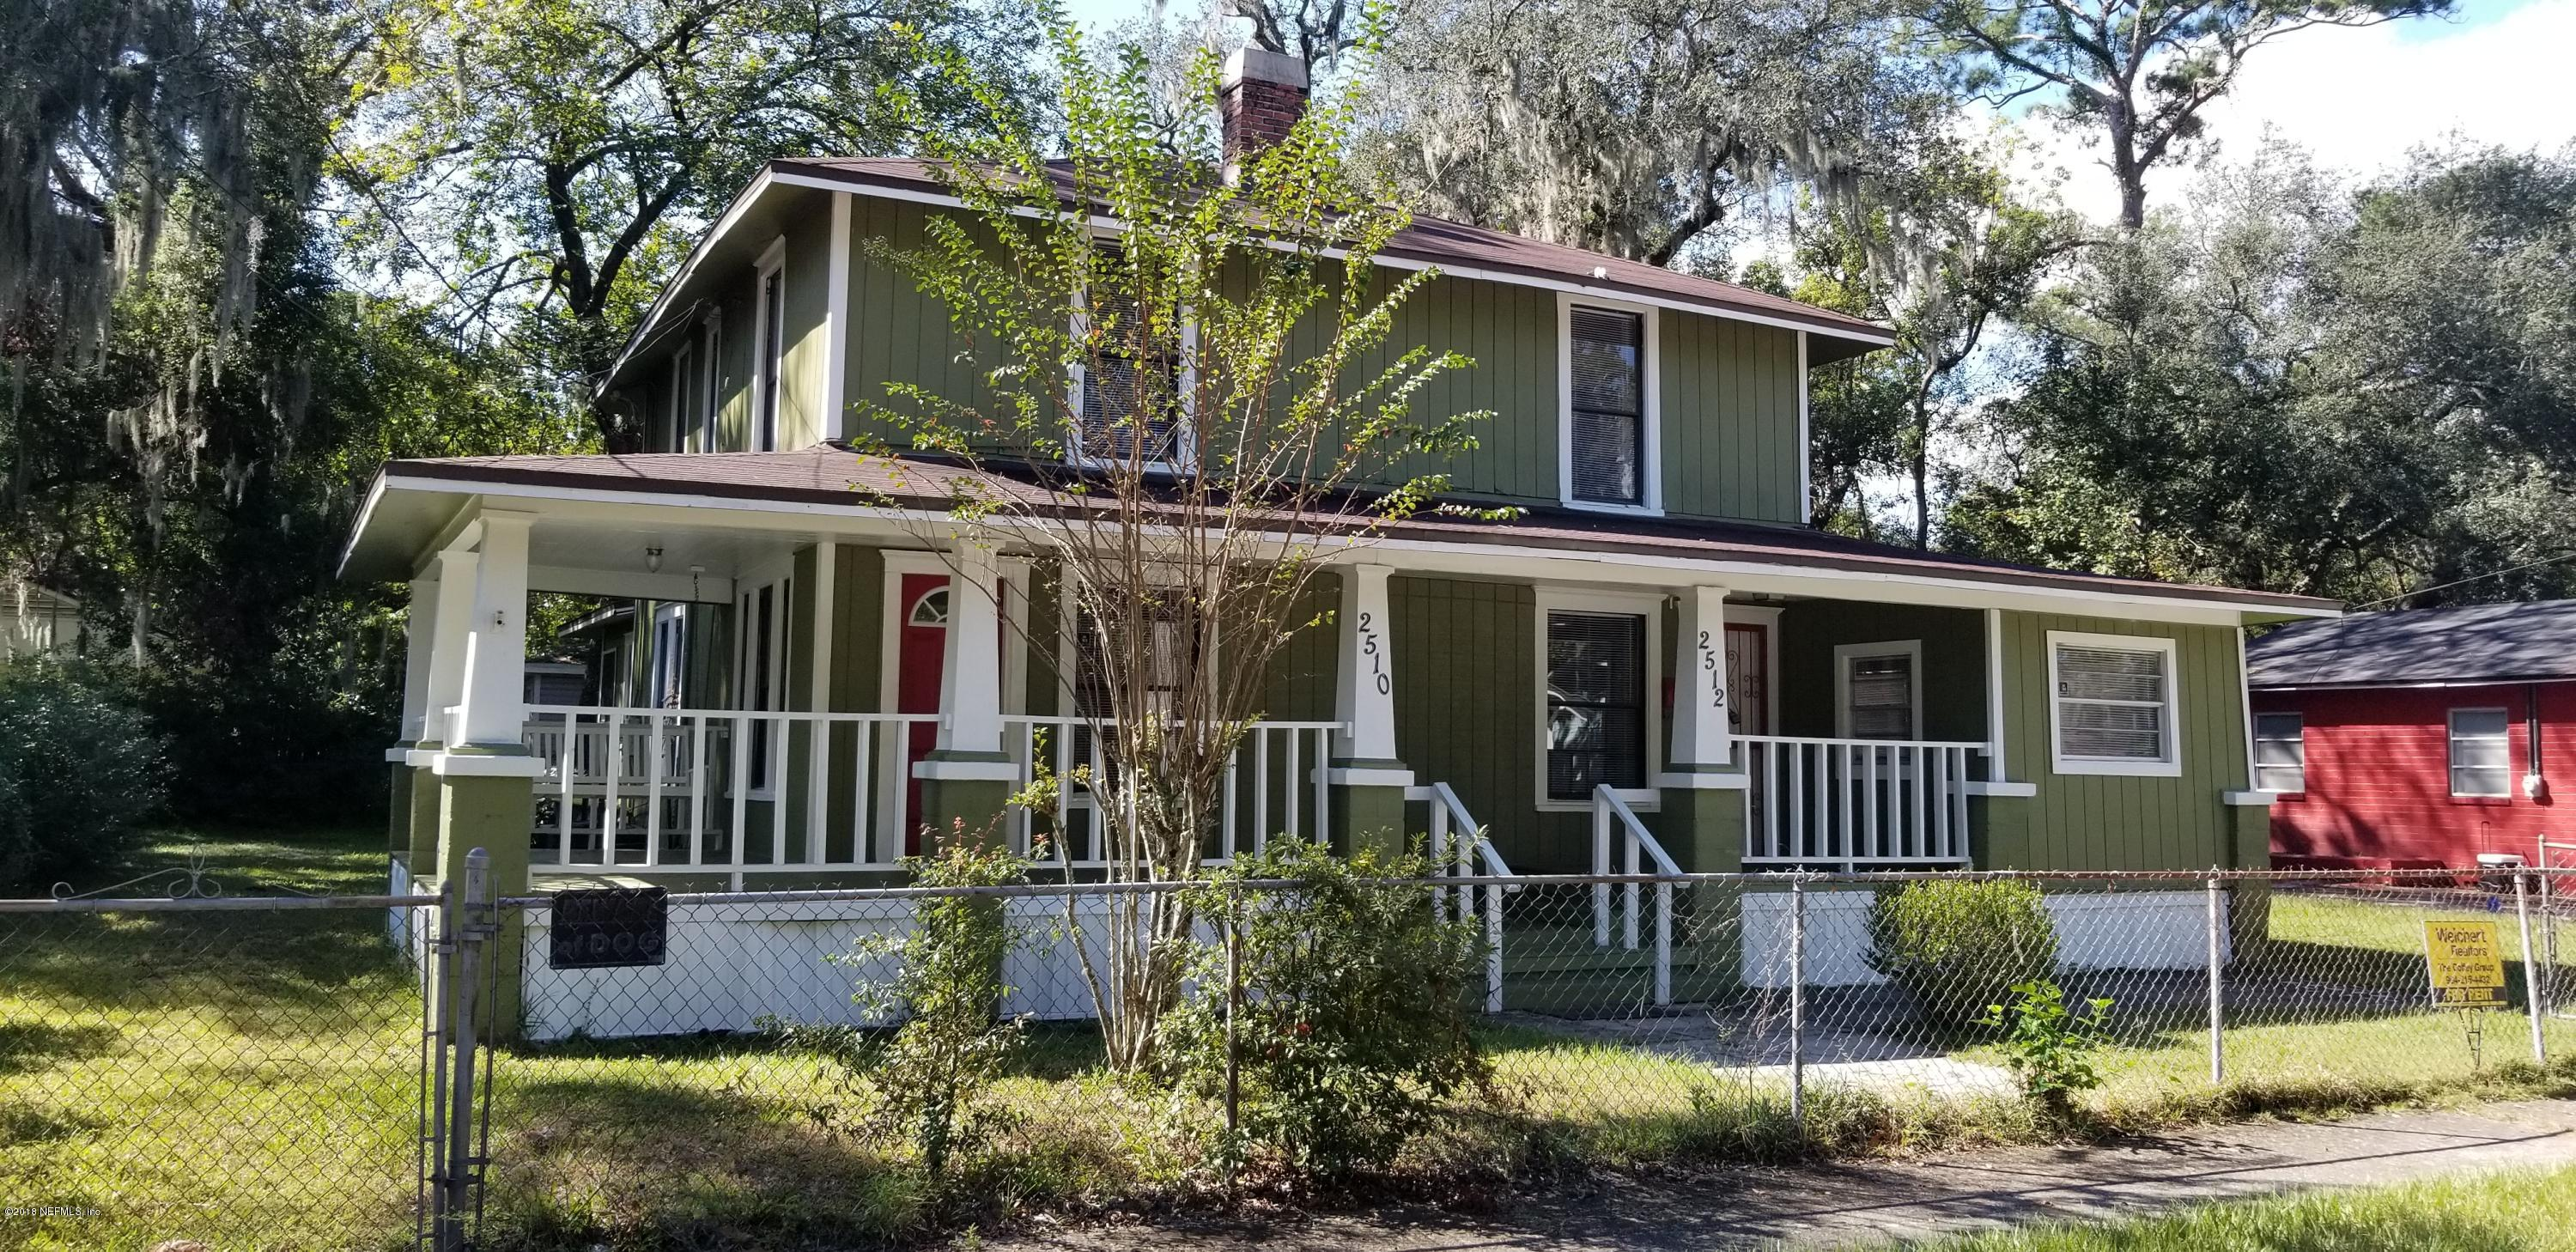 2510 SUMMIT, JACKSONVILLE, FLORIDA 32204, 2 Bedrooms Bedrooms, ,1 BathroomBathrooms,Rental,For Rent,SUMMIT,1082240